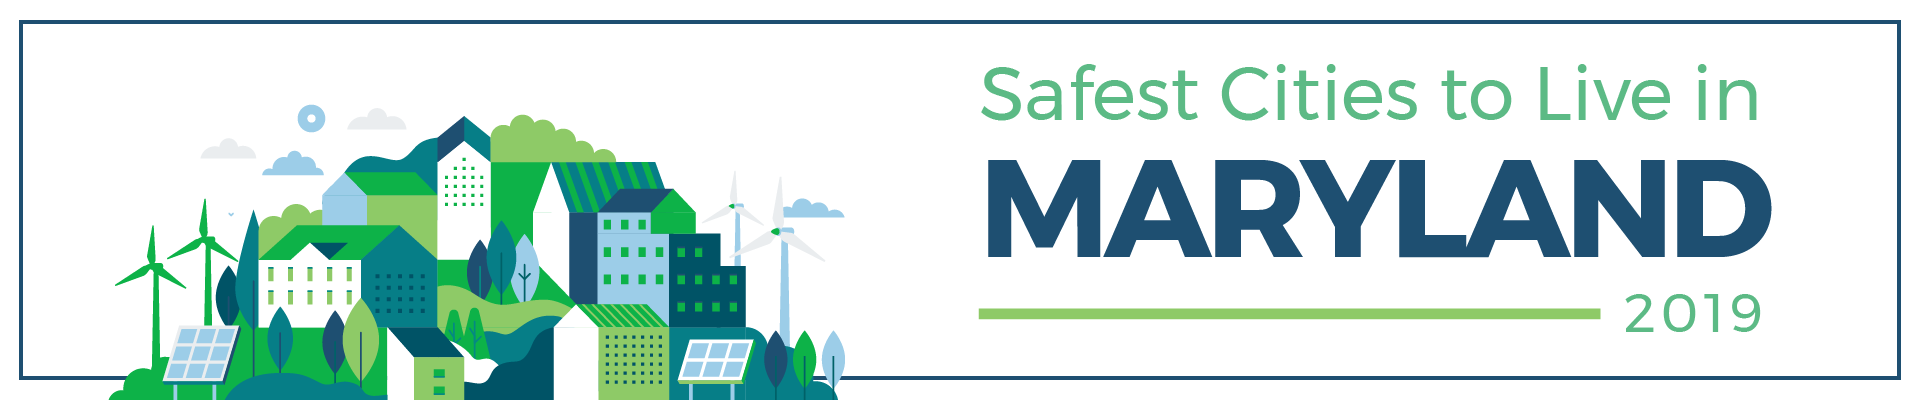 header - safest_cities_maryland_2019